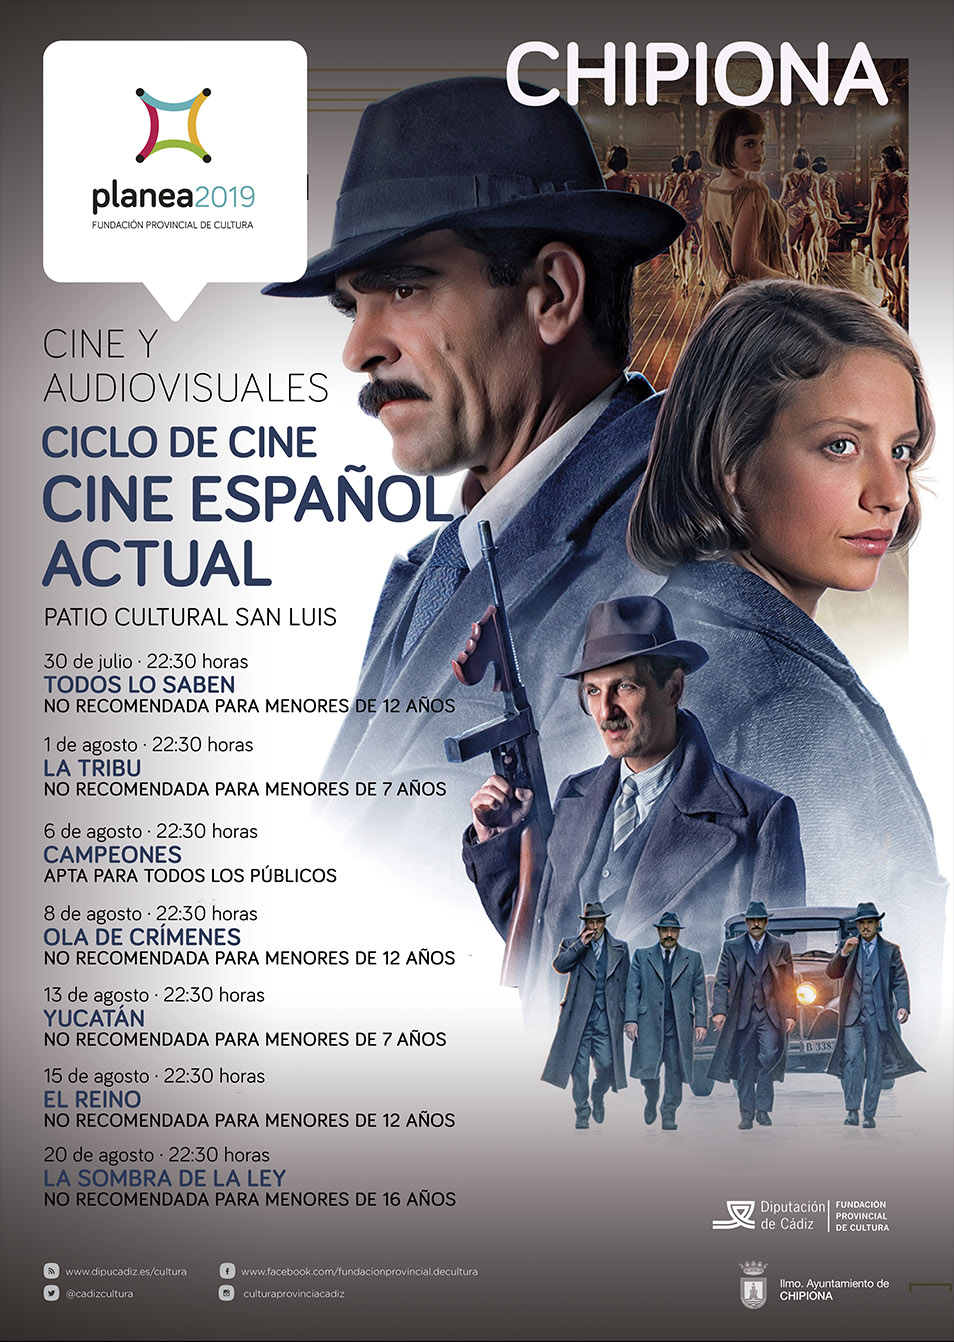 sites/default/files/2019_AGENDA/proyecciones/ciclo-cine-espanol-actual.jpg